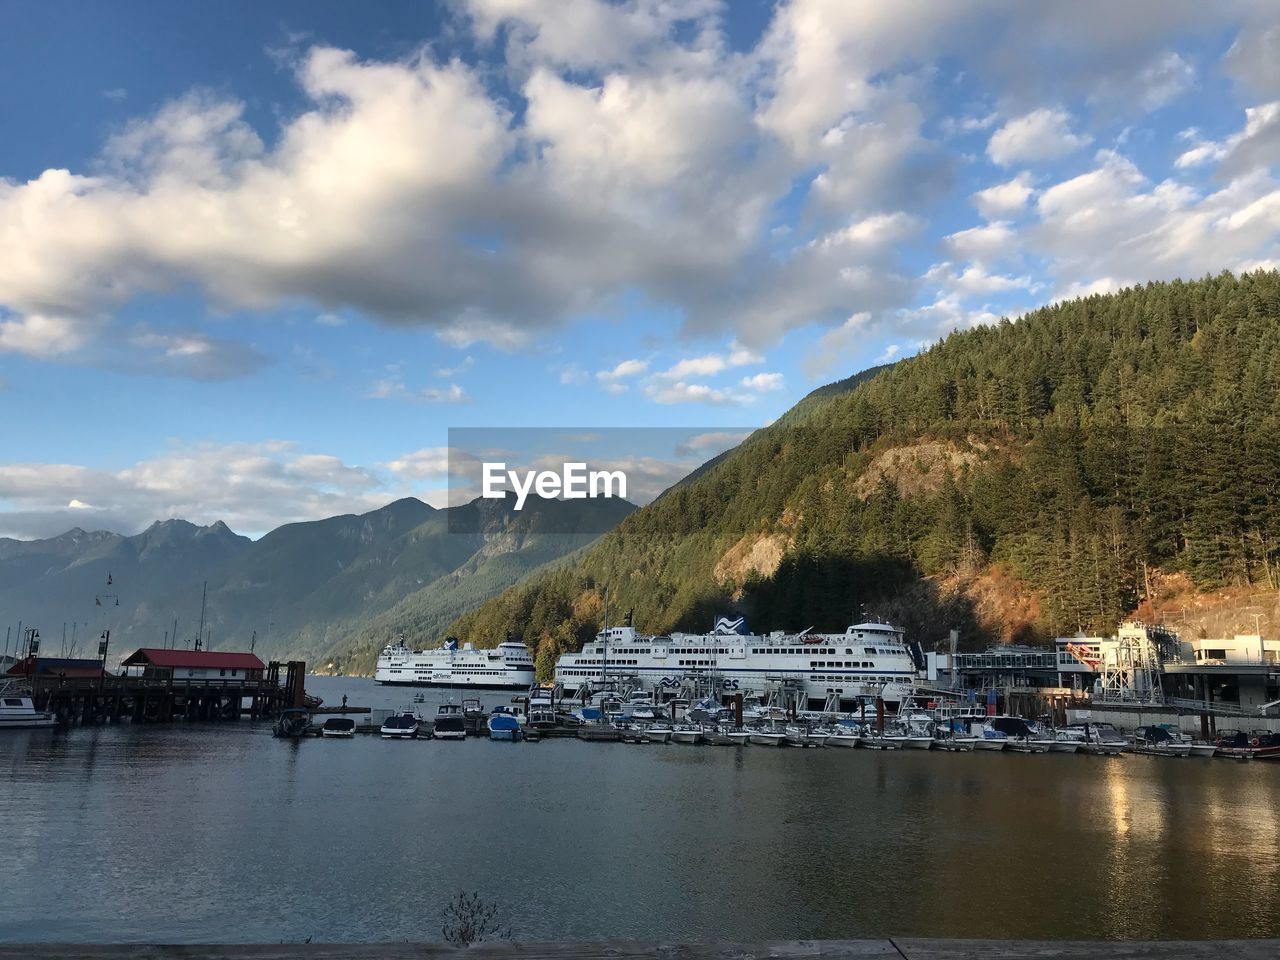 water, cloud - sky, mountain, sky, nautical vessel, waterfront, transportation, architecture, built structure, mode of transportation, nature, scenics - nature, building exterior, no people, beauty in nature, river, tree, harbor, outdoors, mountain range, yacht, passenger craft, bay